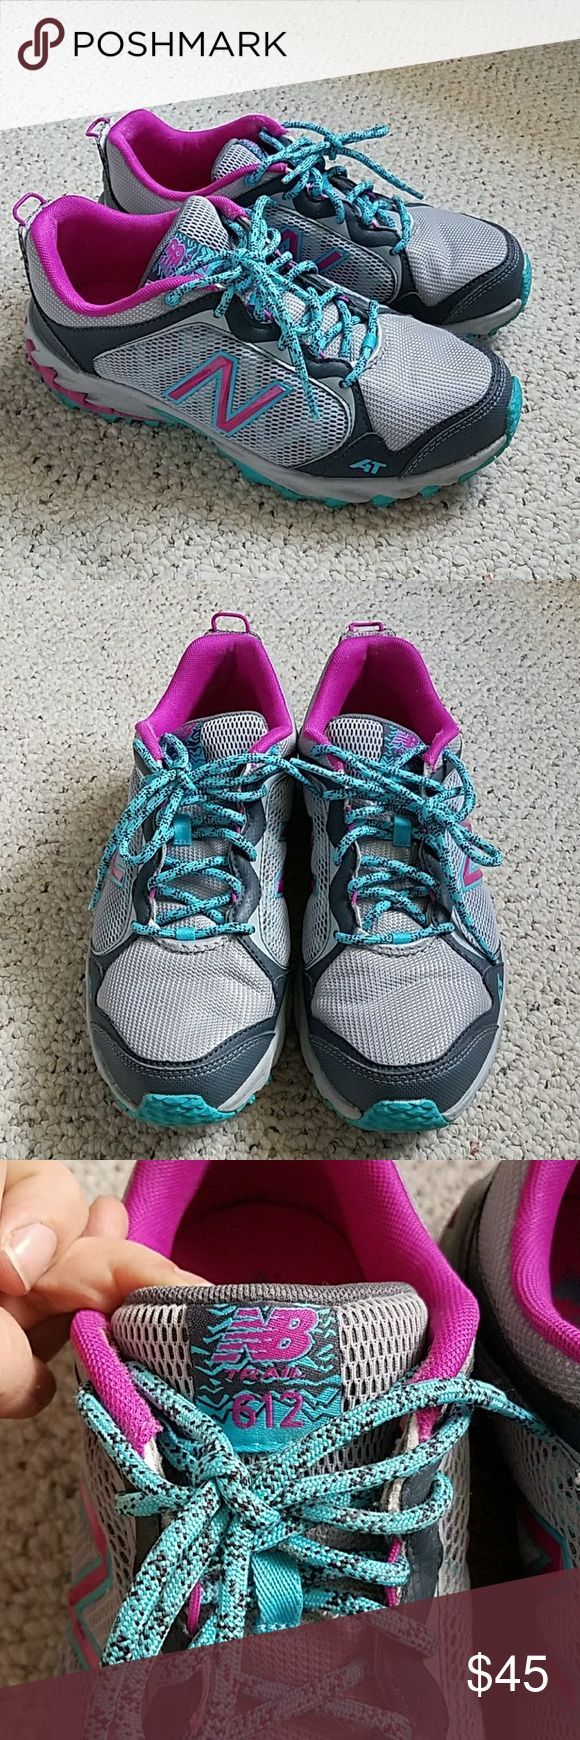 New Balance all terrain sneakers size 8.5 In great used condition all terrain sneakers marked Trail 612 by New Balance. Size 8.5.  Some wear to the bottom, see pictures. Great sturdy and comfortable shoes! New Balance Shoes Sneakers